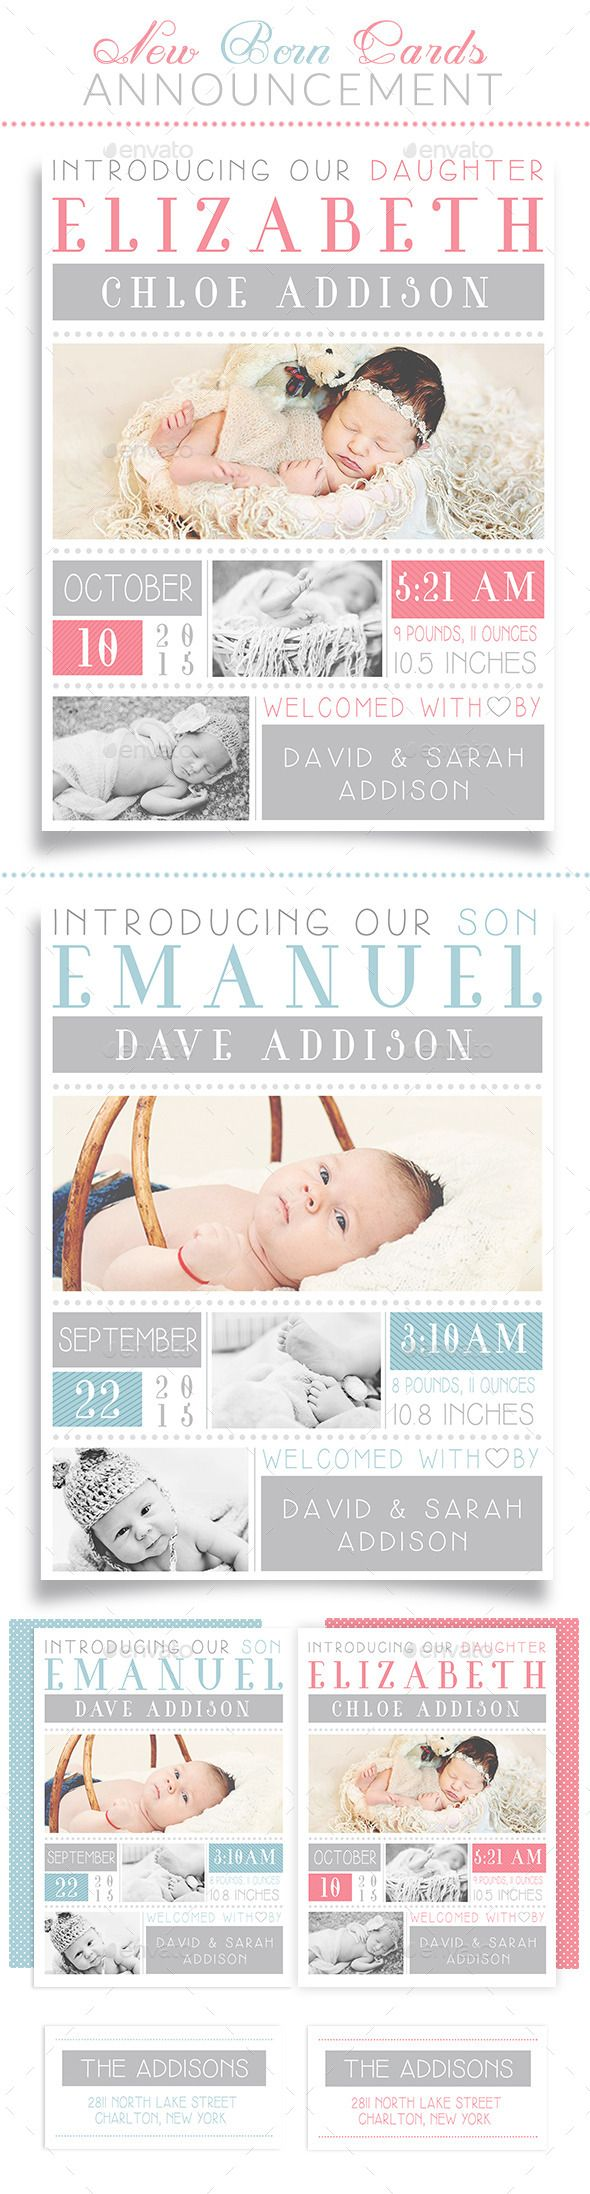 New Born Cards Announcement Template